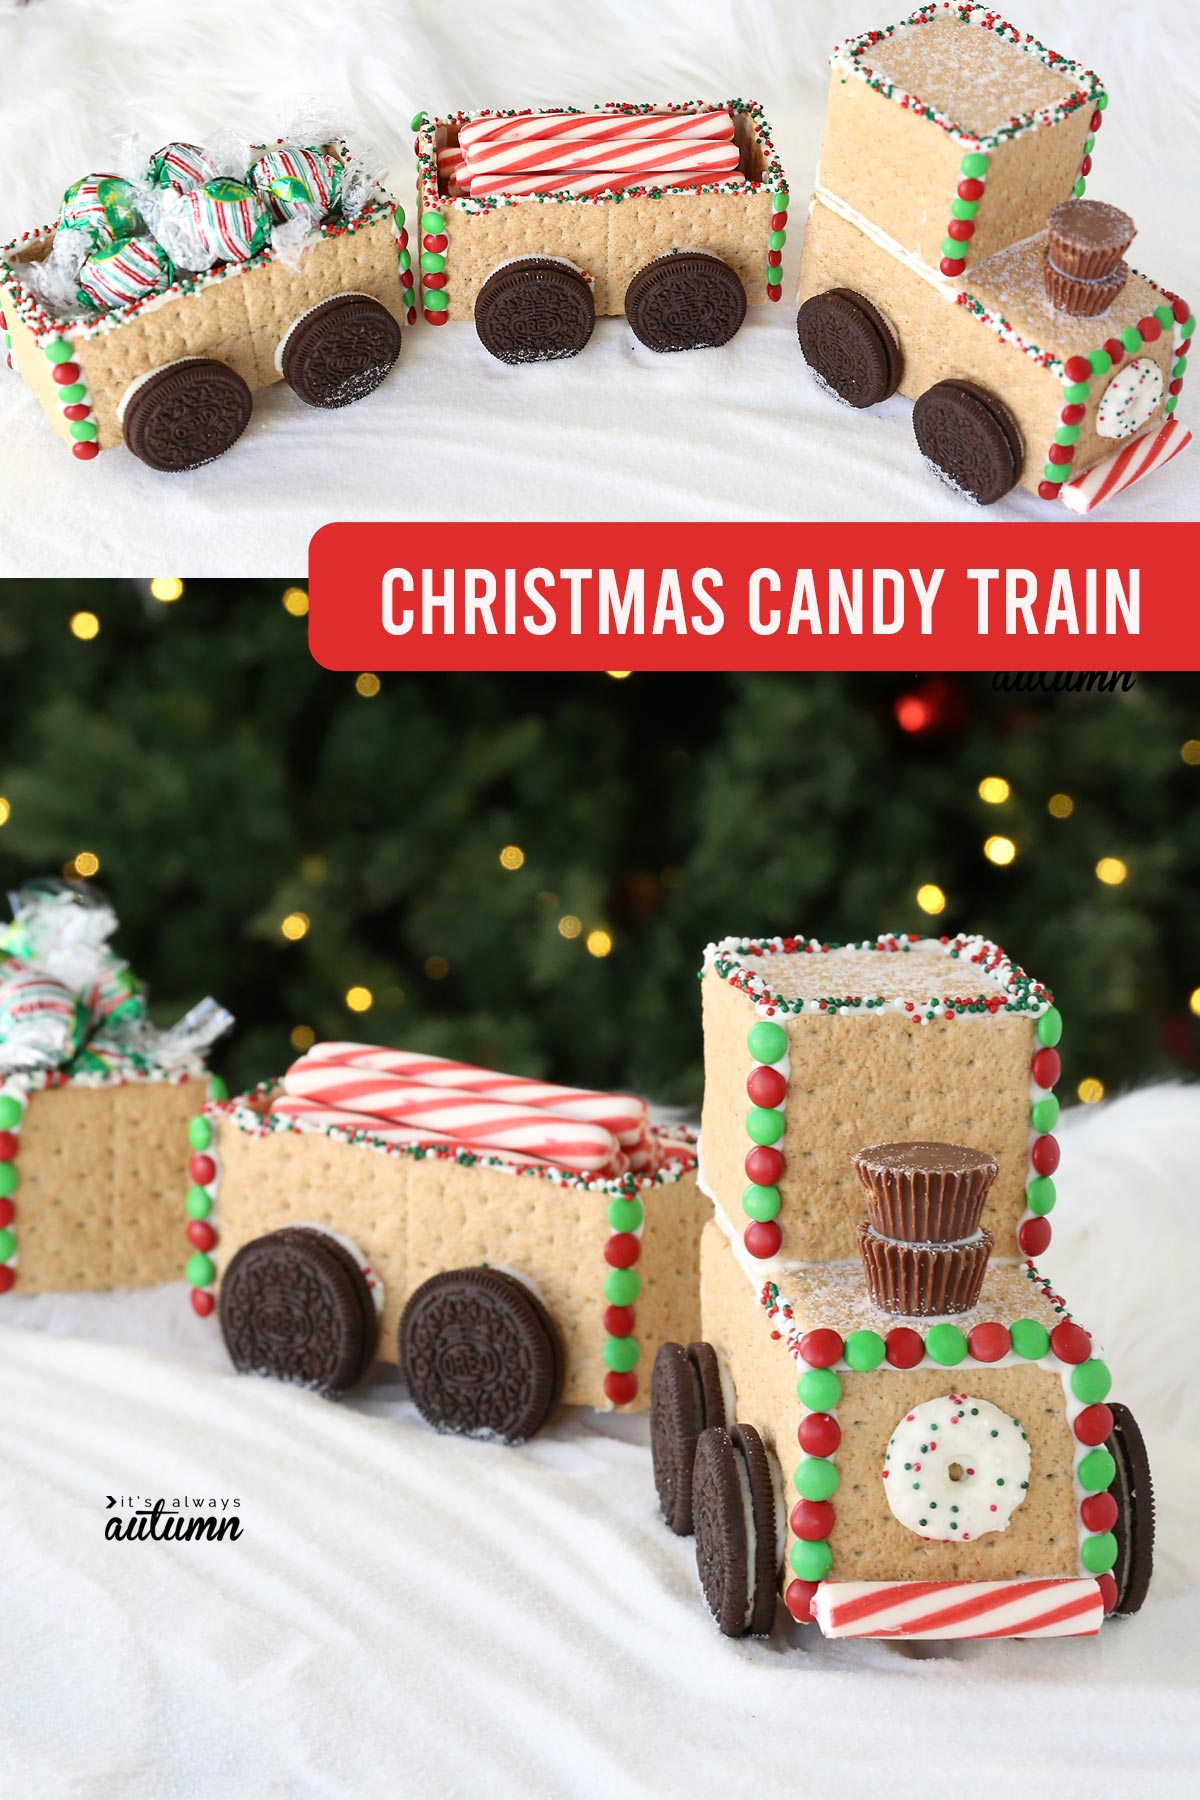 Christmas train made from graham crackers